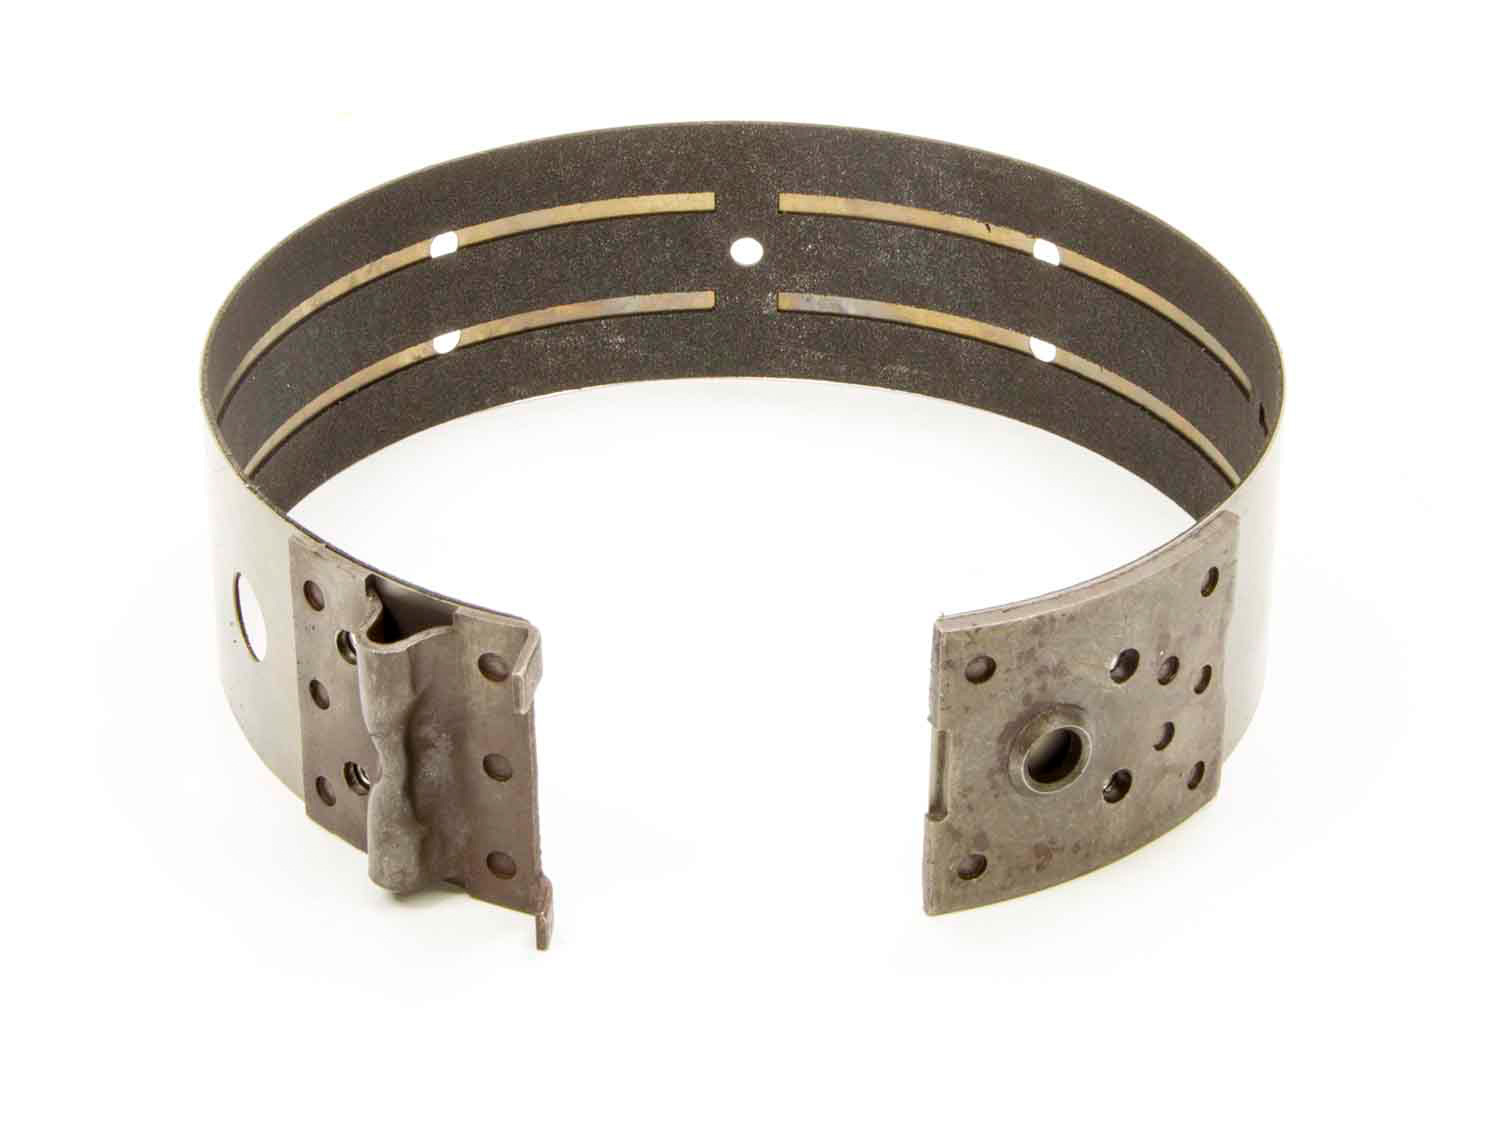 Kevlar Band For GM 700R4 & 4L60E